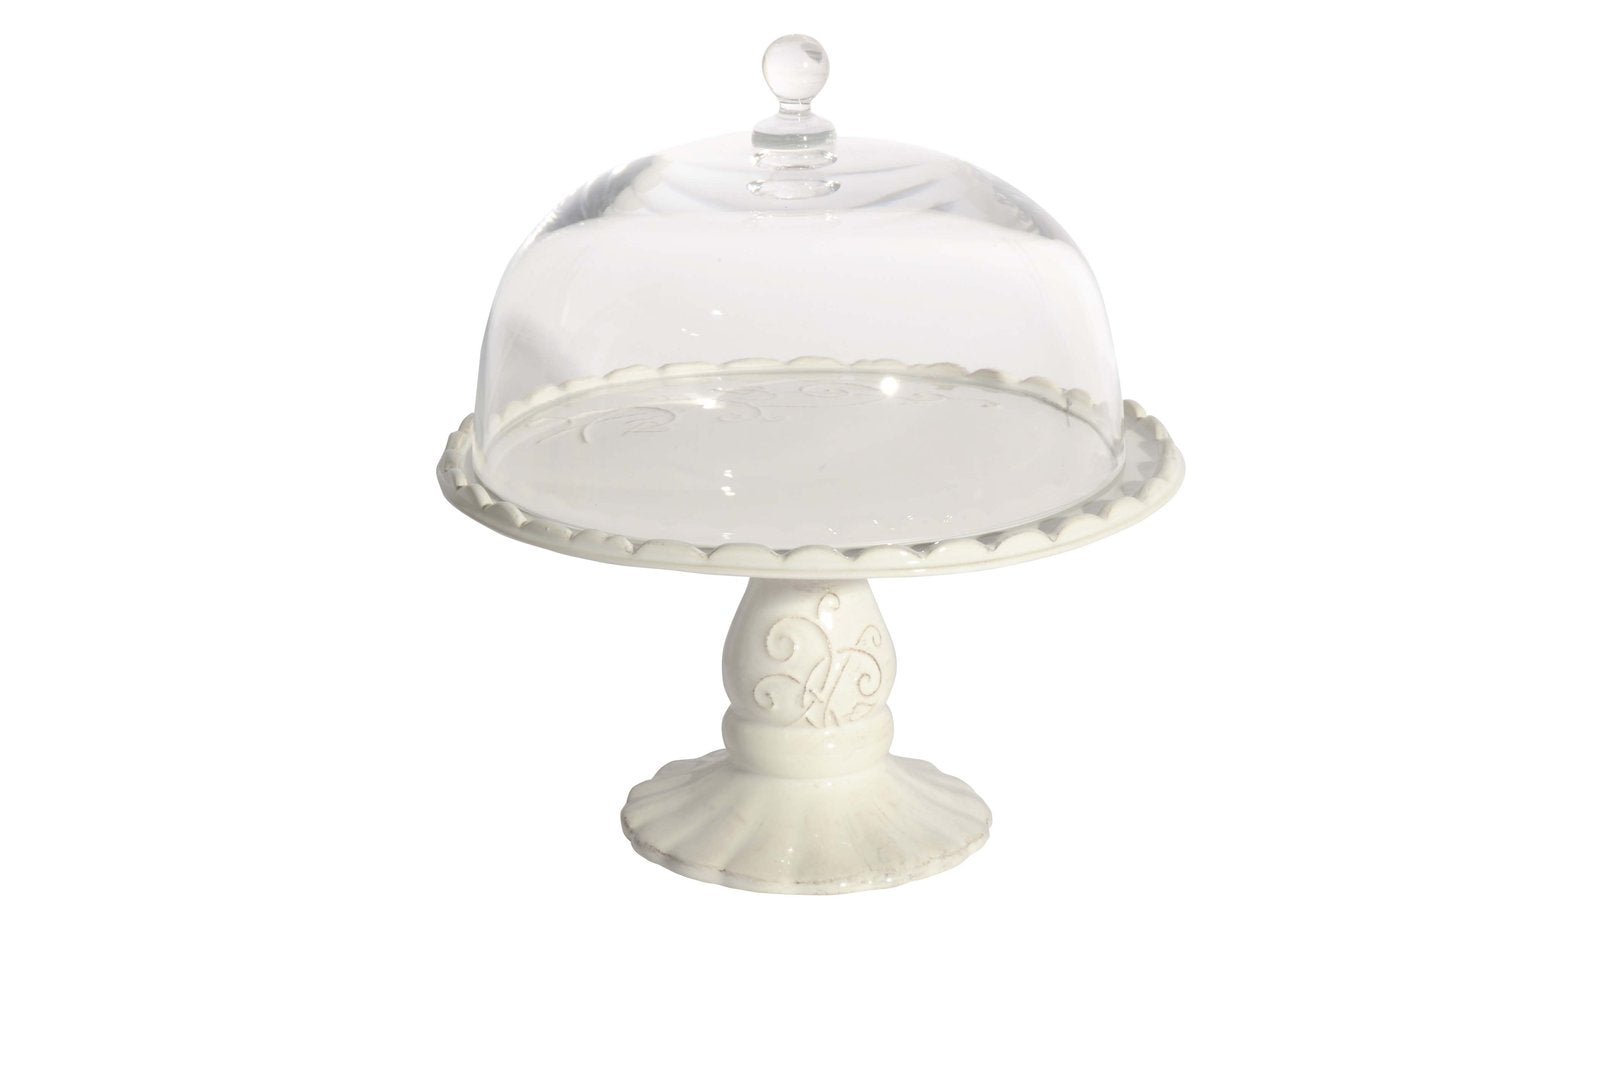 Convito small cake stand, HOME DECOR, VIRGINIA CASA, - Fabrica